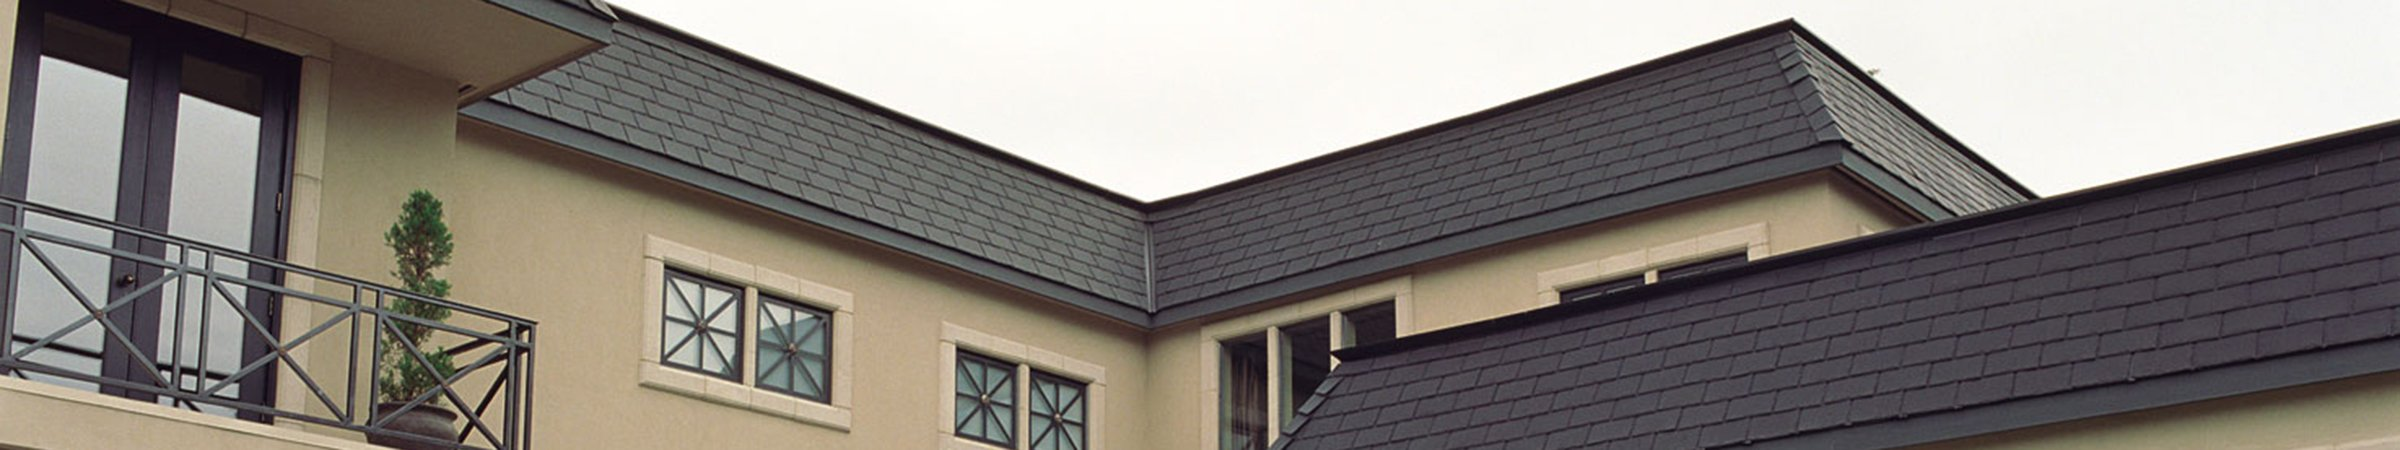 Residence With Majestic Slate Roof Tiles Ecostar